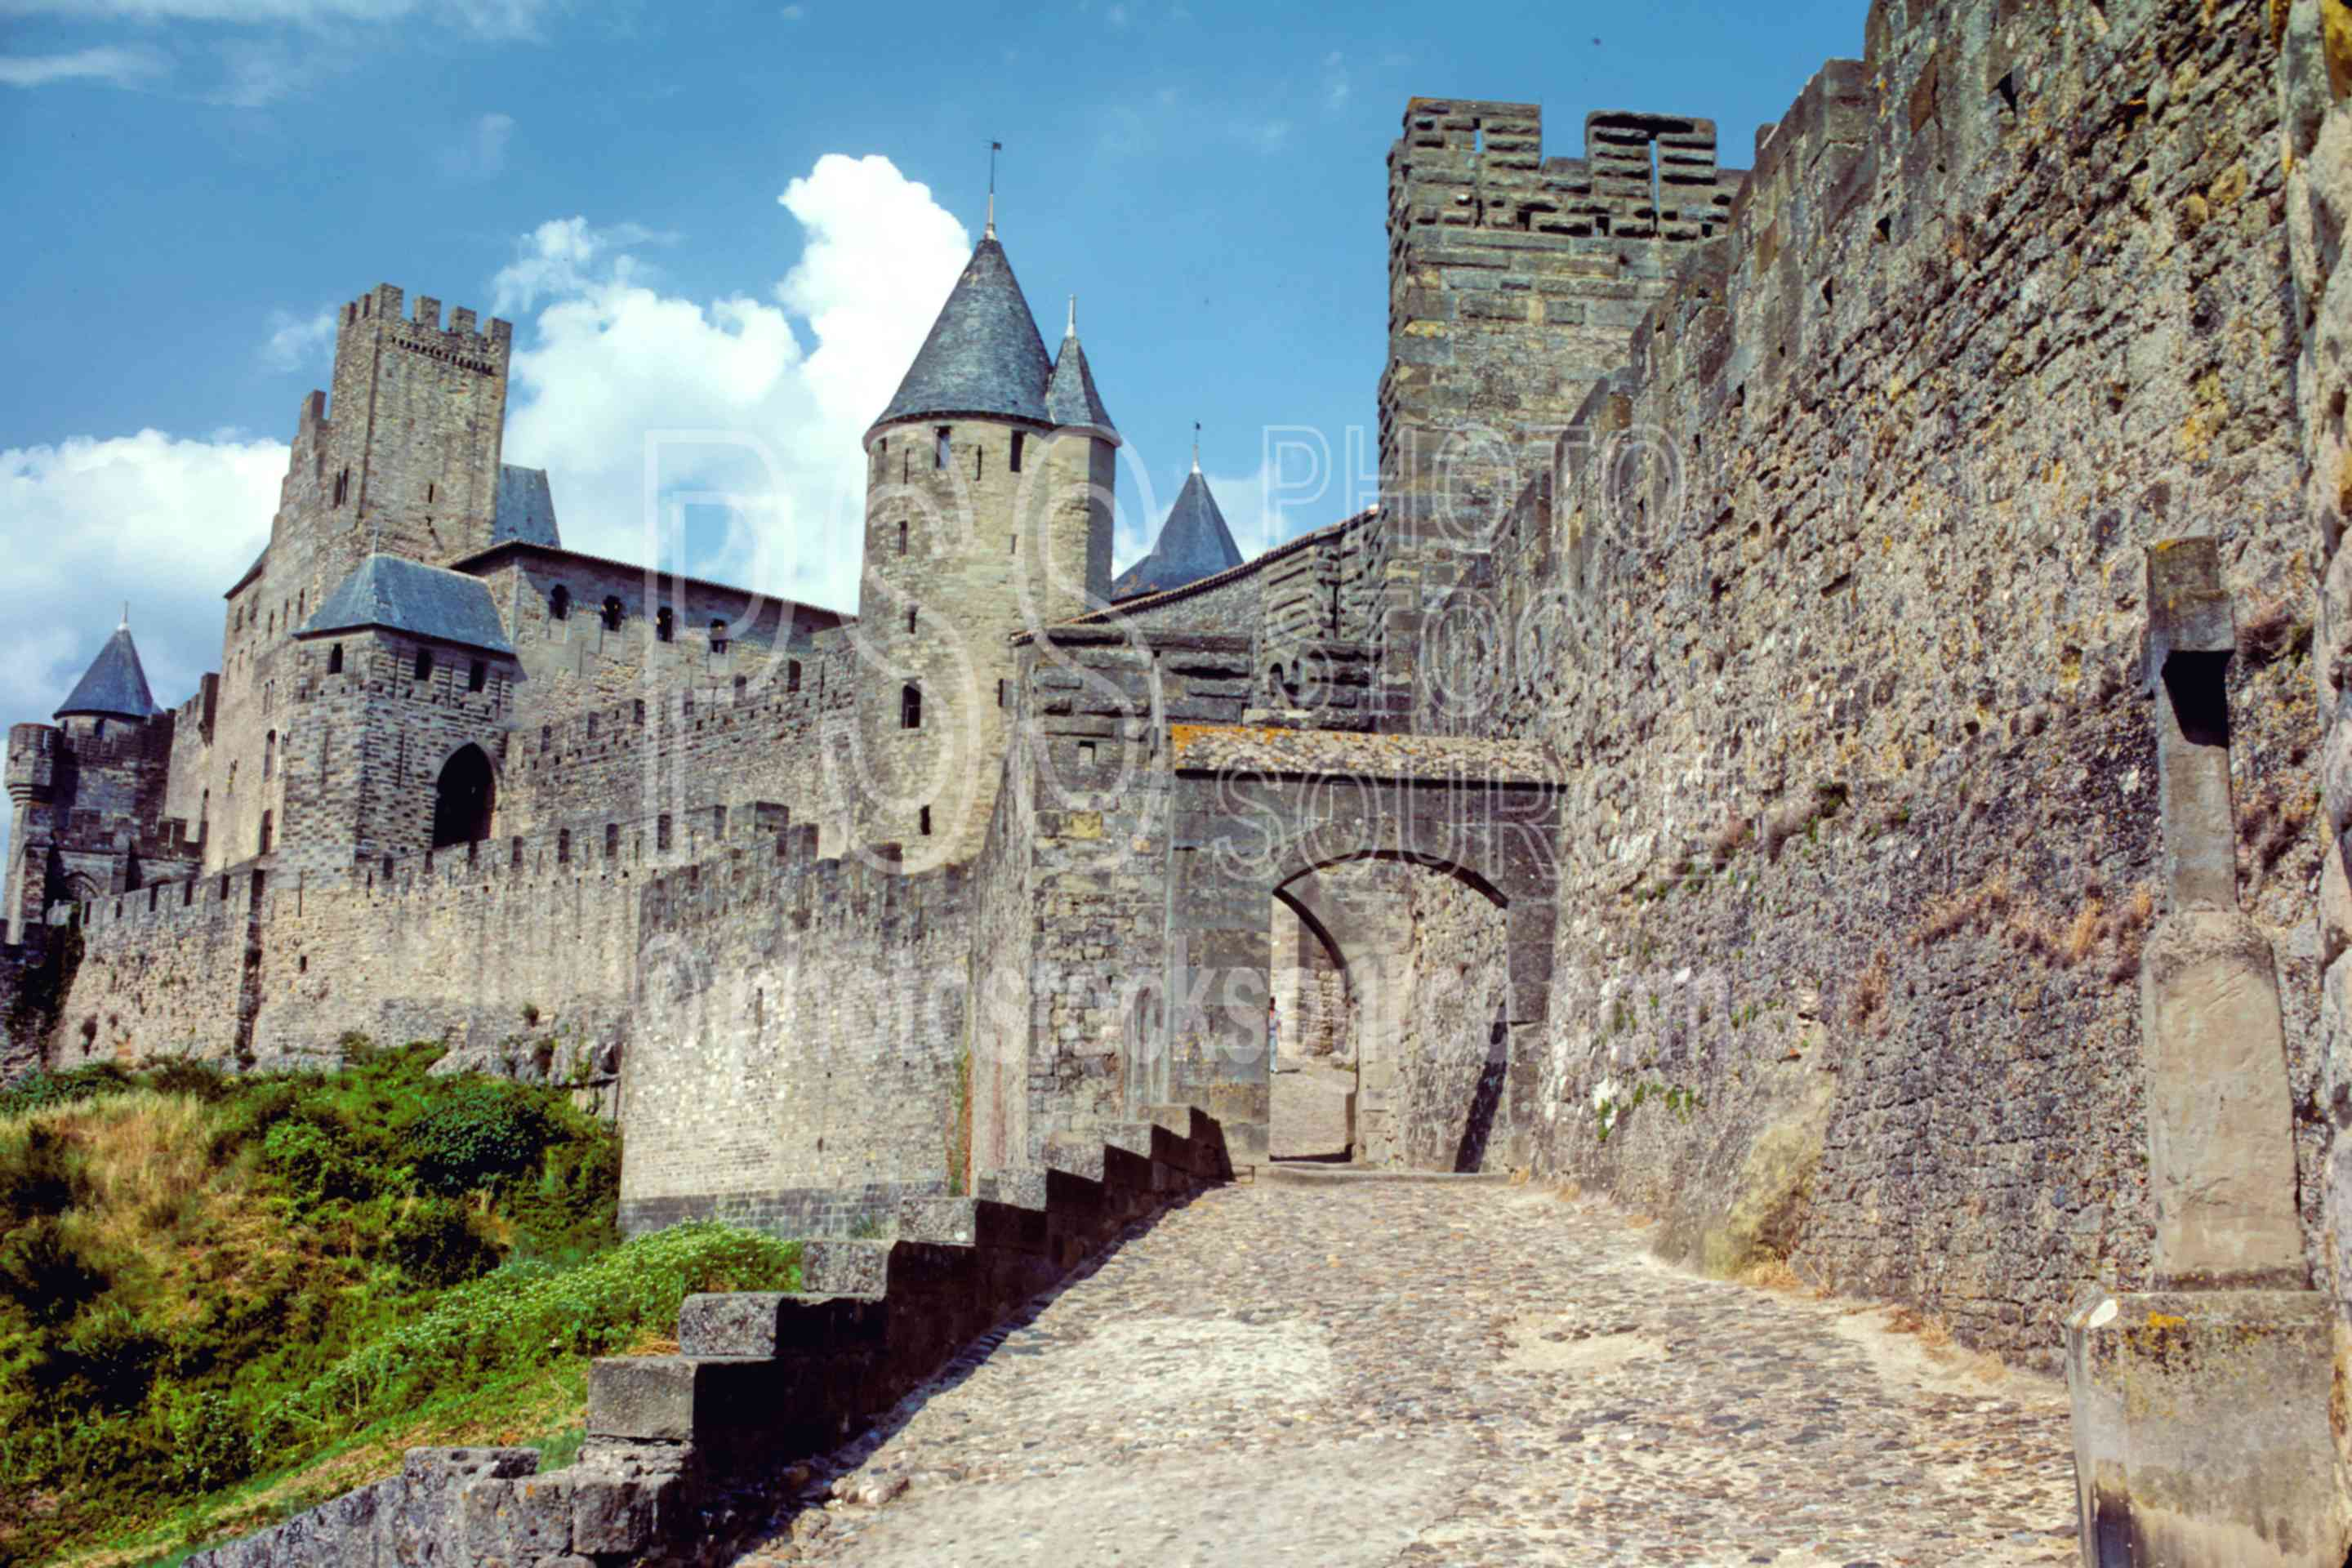 Entrance to the City,castle,europe,medieval,road,wall,france castles